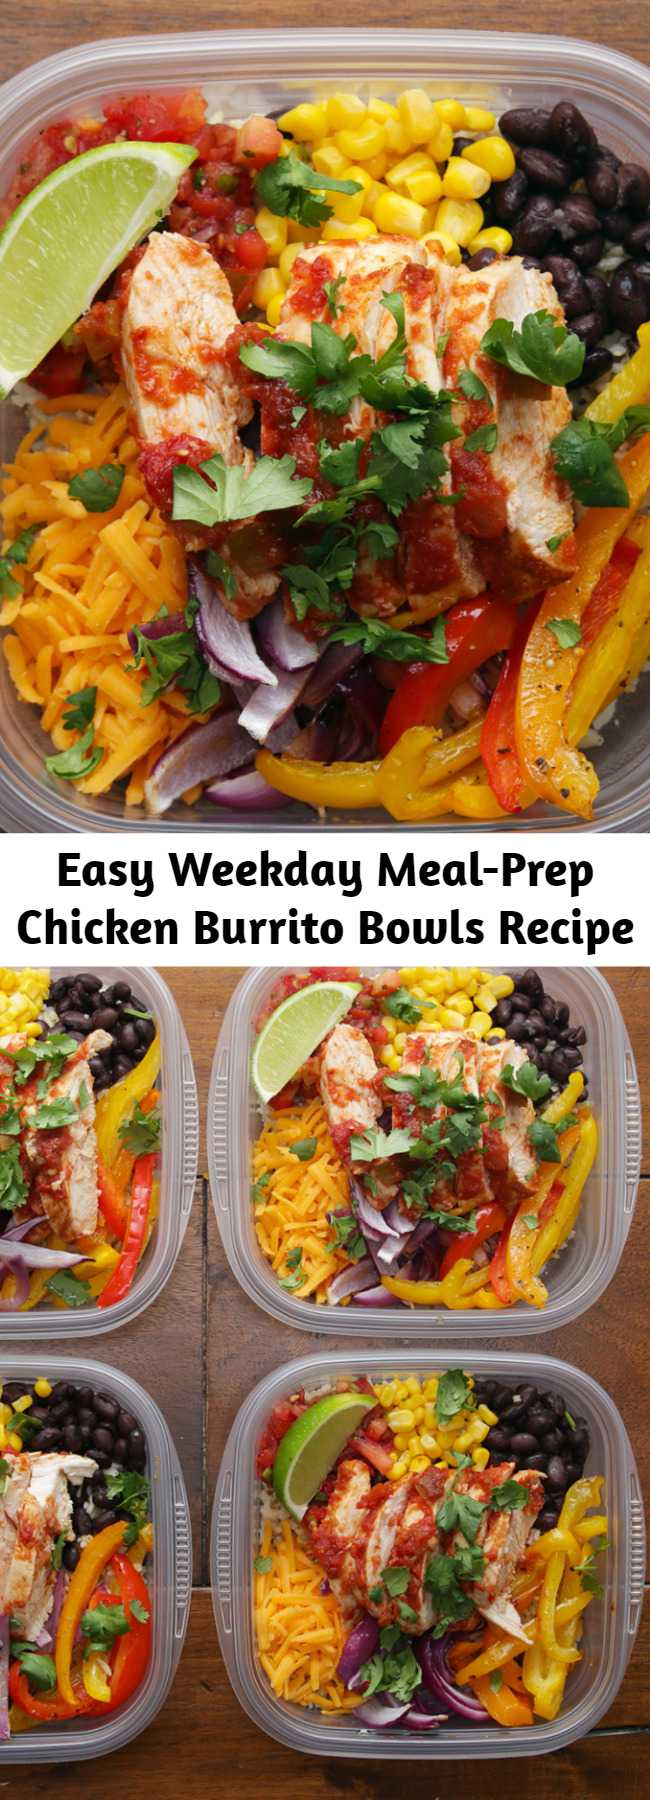 Easy Weekday Meal-Prep Chicken Burrito Bowls Recipe - Make these chicken burrito lunch bowls for healthy lunches through the week!